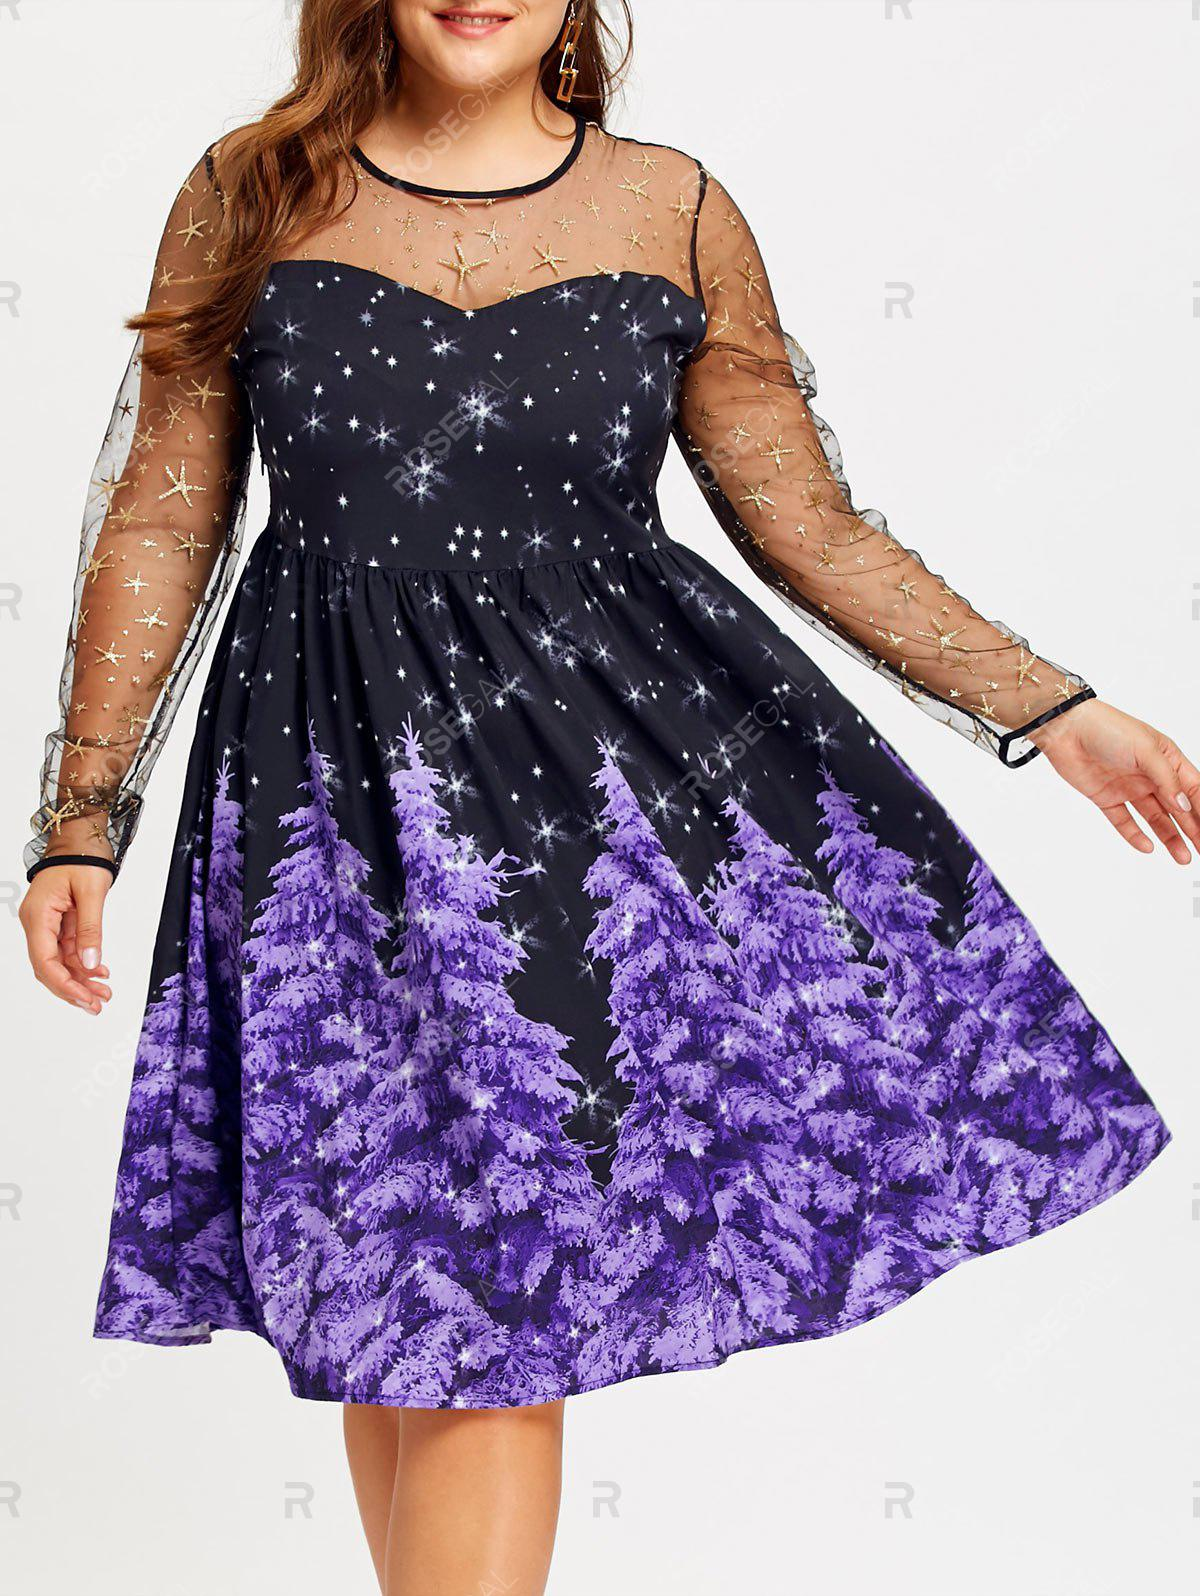 Plus Size Mesh Panel Star and Christmas Tree Print DressWOMEN<br><br>Size: 5XL; Color: PURPLE; Style: Vintage; Material: Polyester; Silhouette: A-Line; Dresses Length: Mid-Calf; Neckline: Round Collar; Sleeve Length: Long Sleeves; Embellishment: Panel; Pattern Type: Christmas Tree,Star; With Belt: No; Season: Fall,Spring; Weight: 0.2600kg; Package Contents: 1 x Dress;